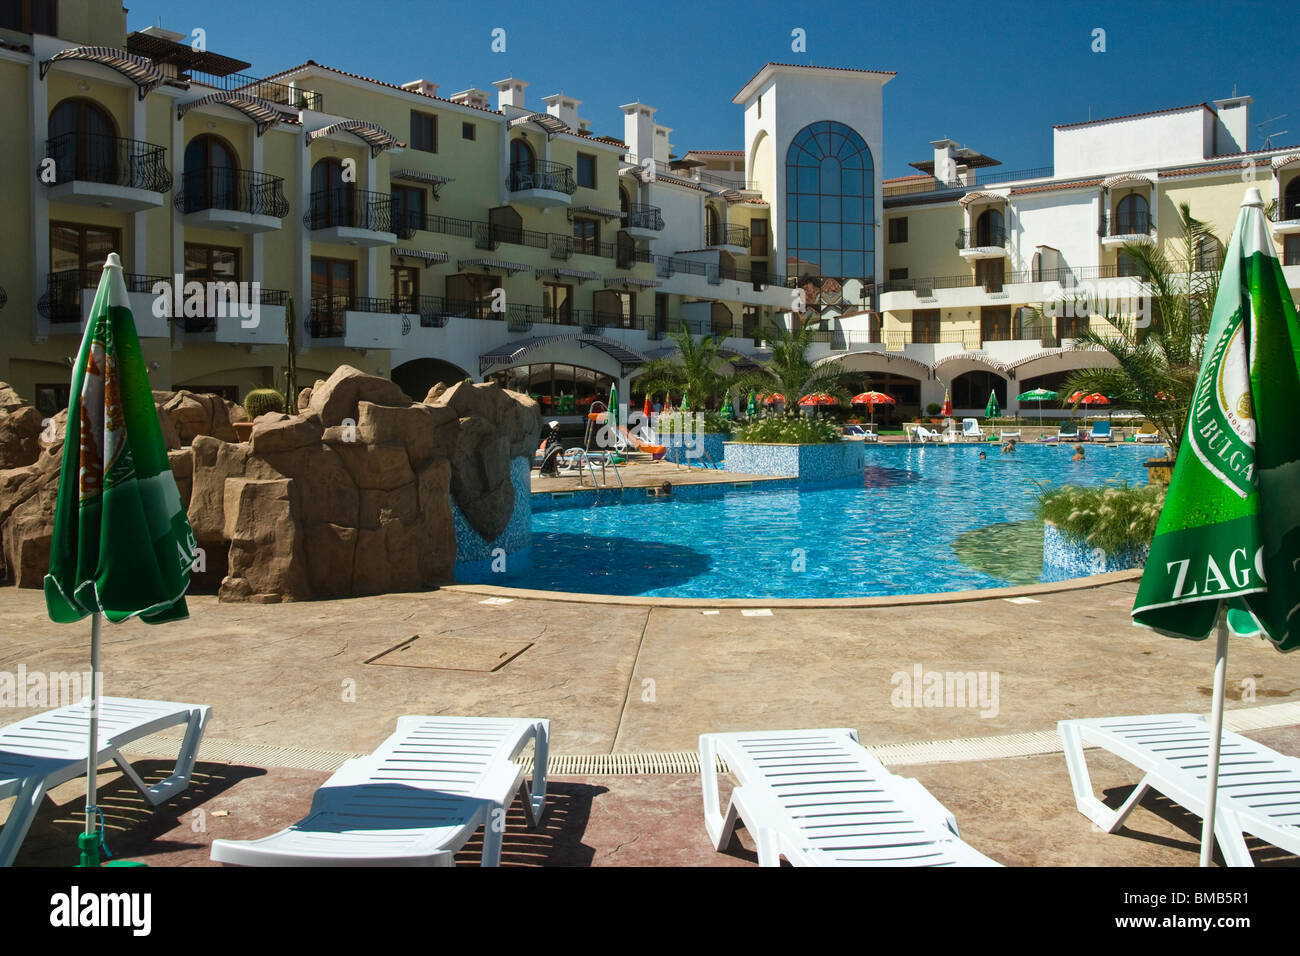 View from city of Sozopol, pool in front of hotel - Stock Image